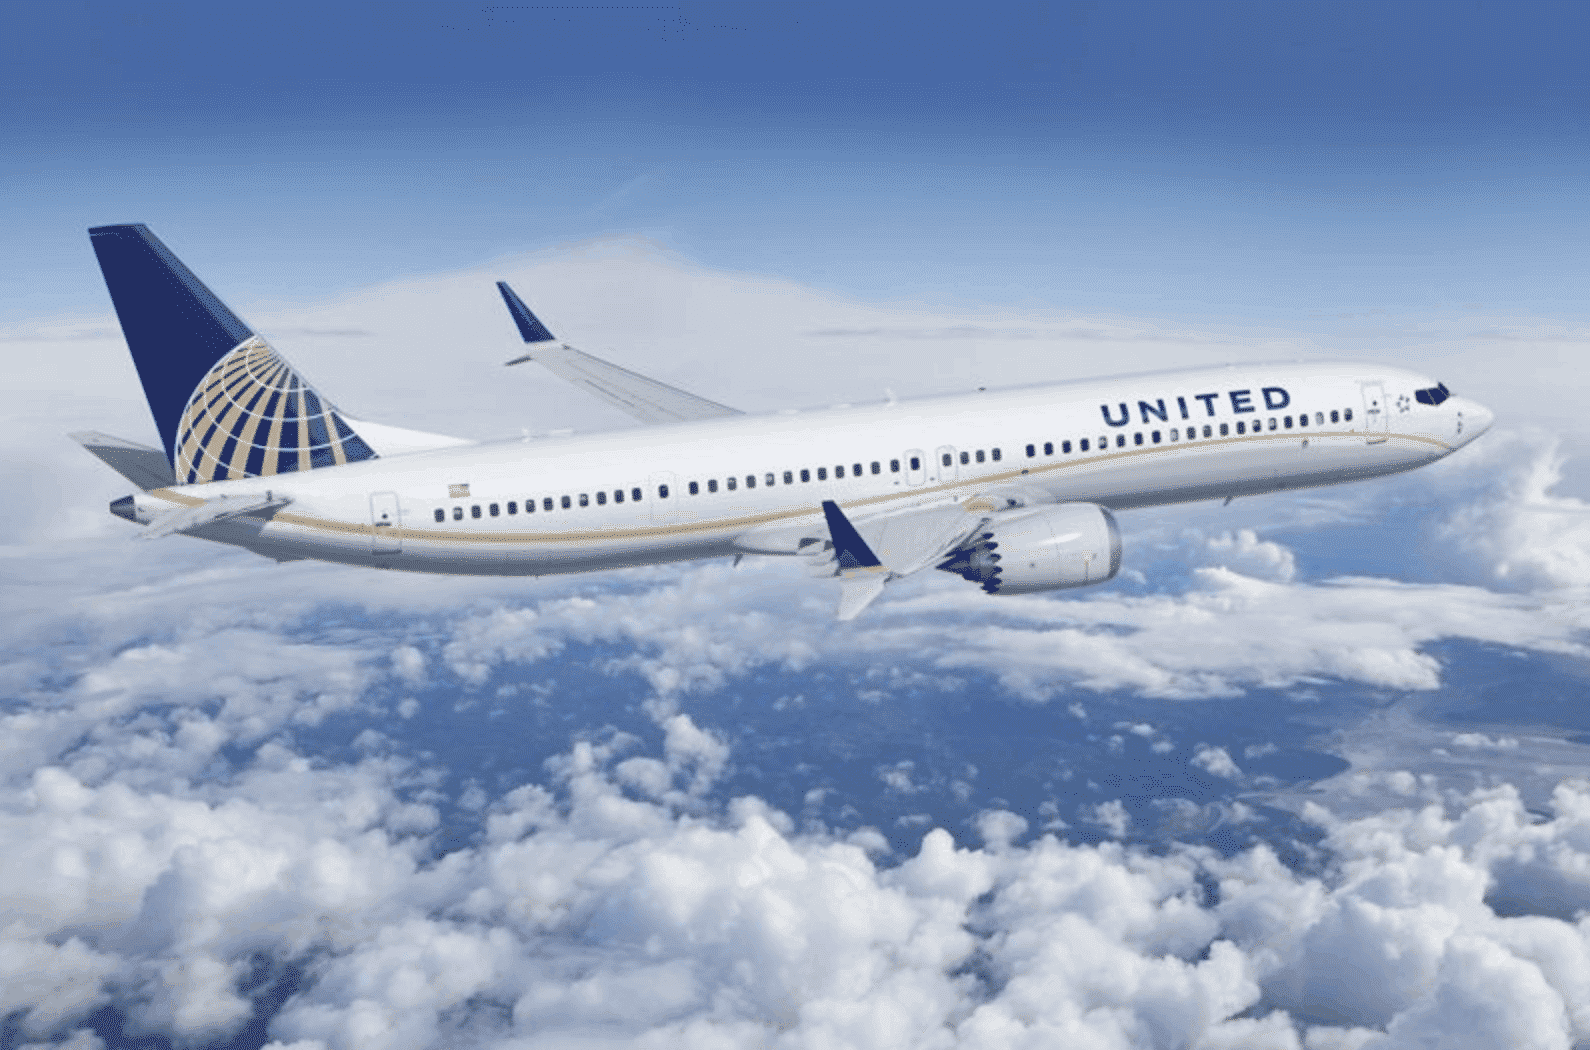 Apple Partners with United Airlines to Upgrade SFO Terminal